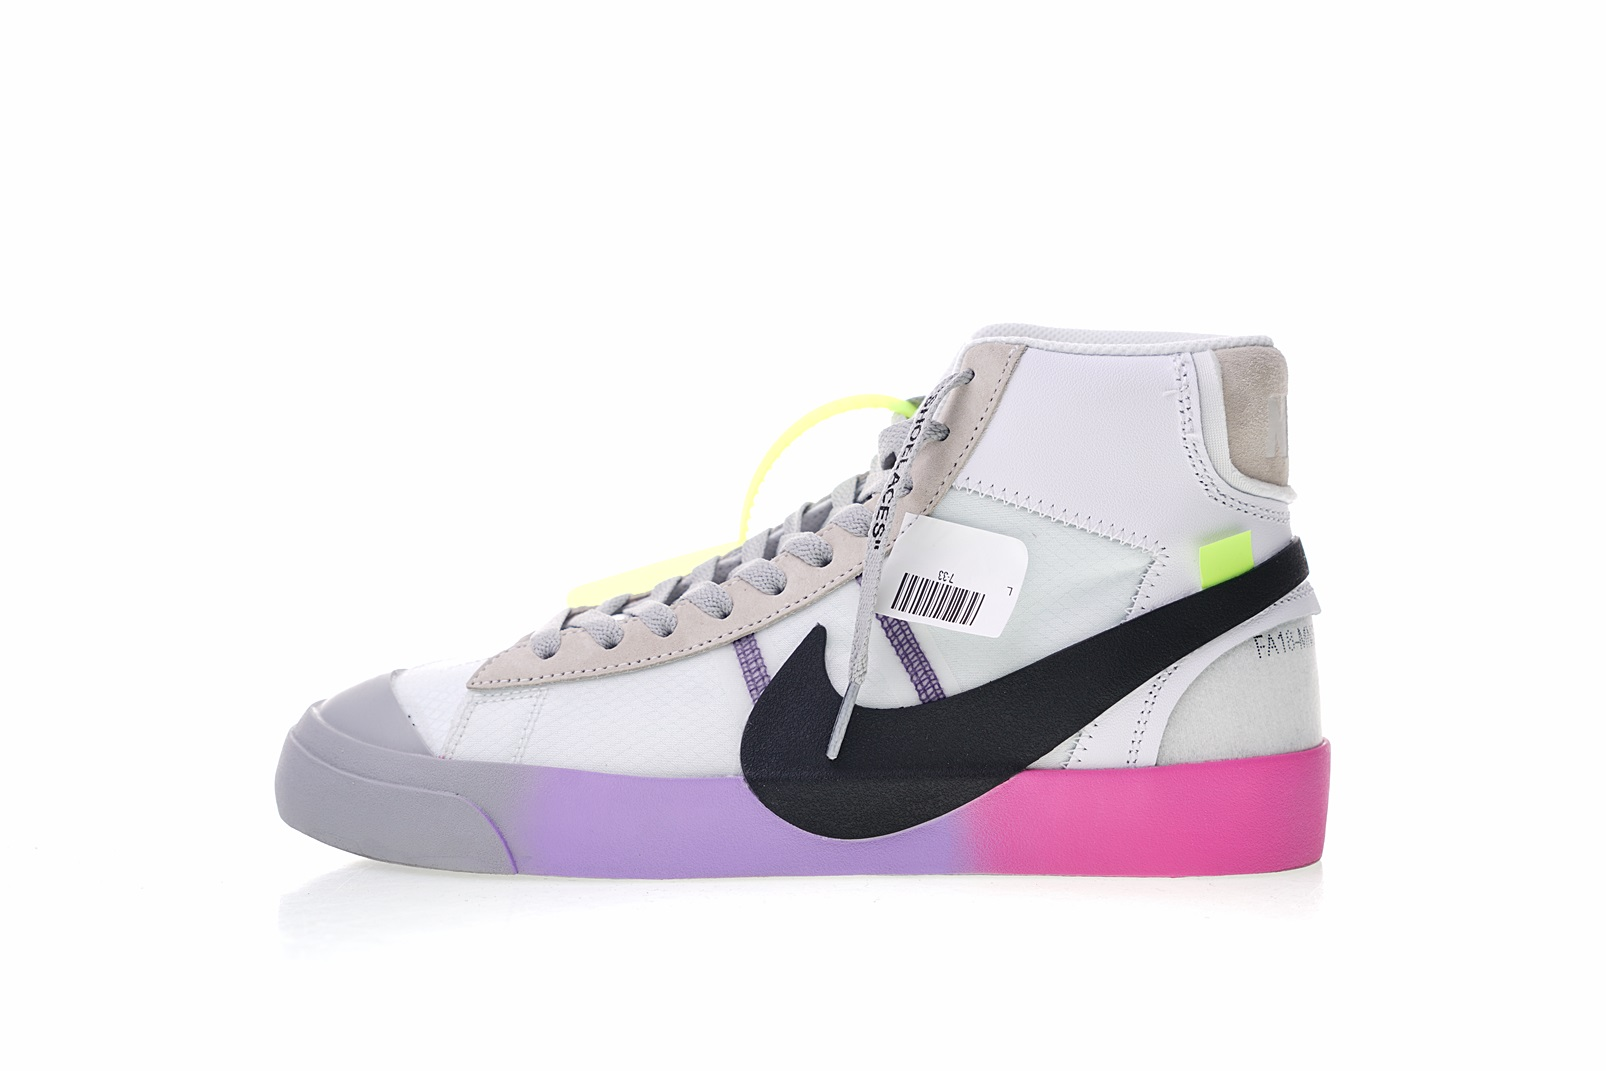 Off-White x Nike Blazer MID 'Queen'